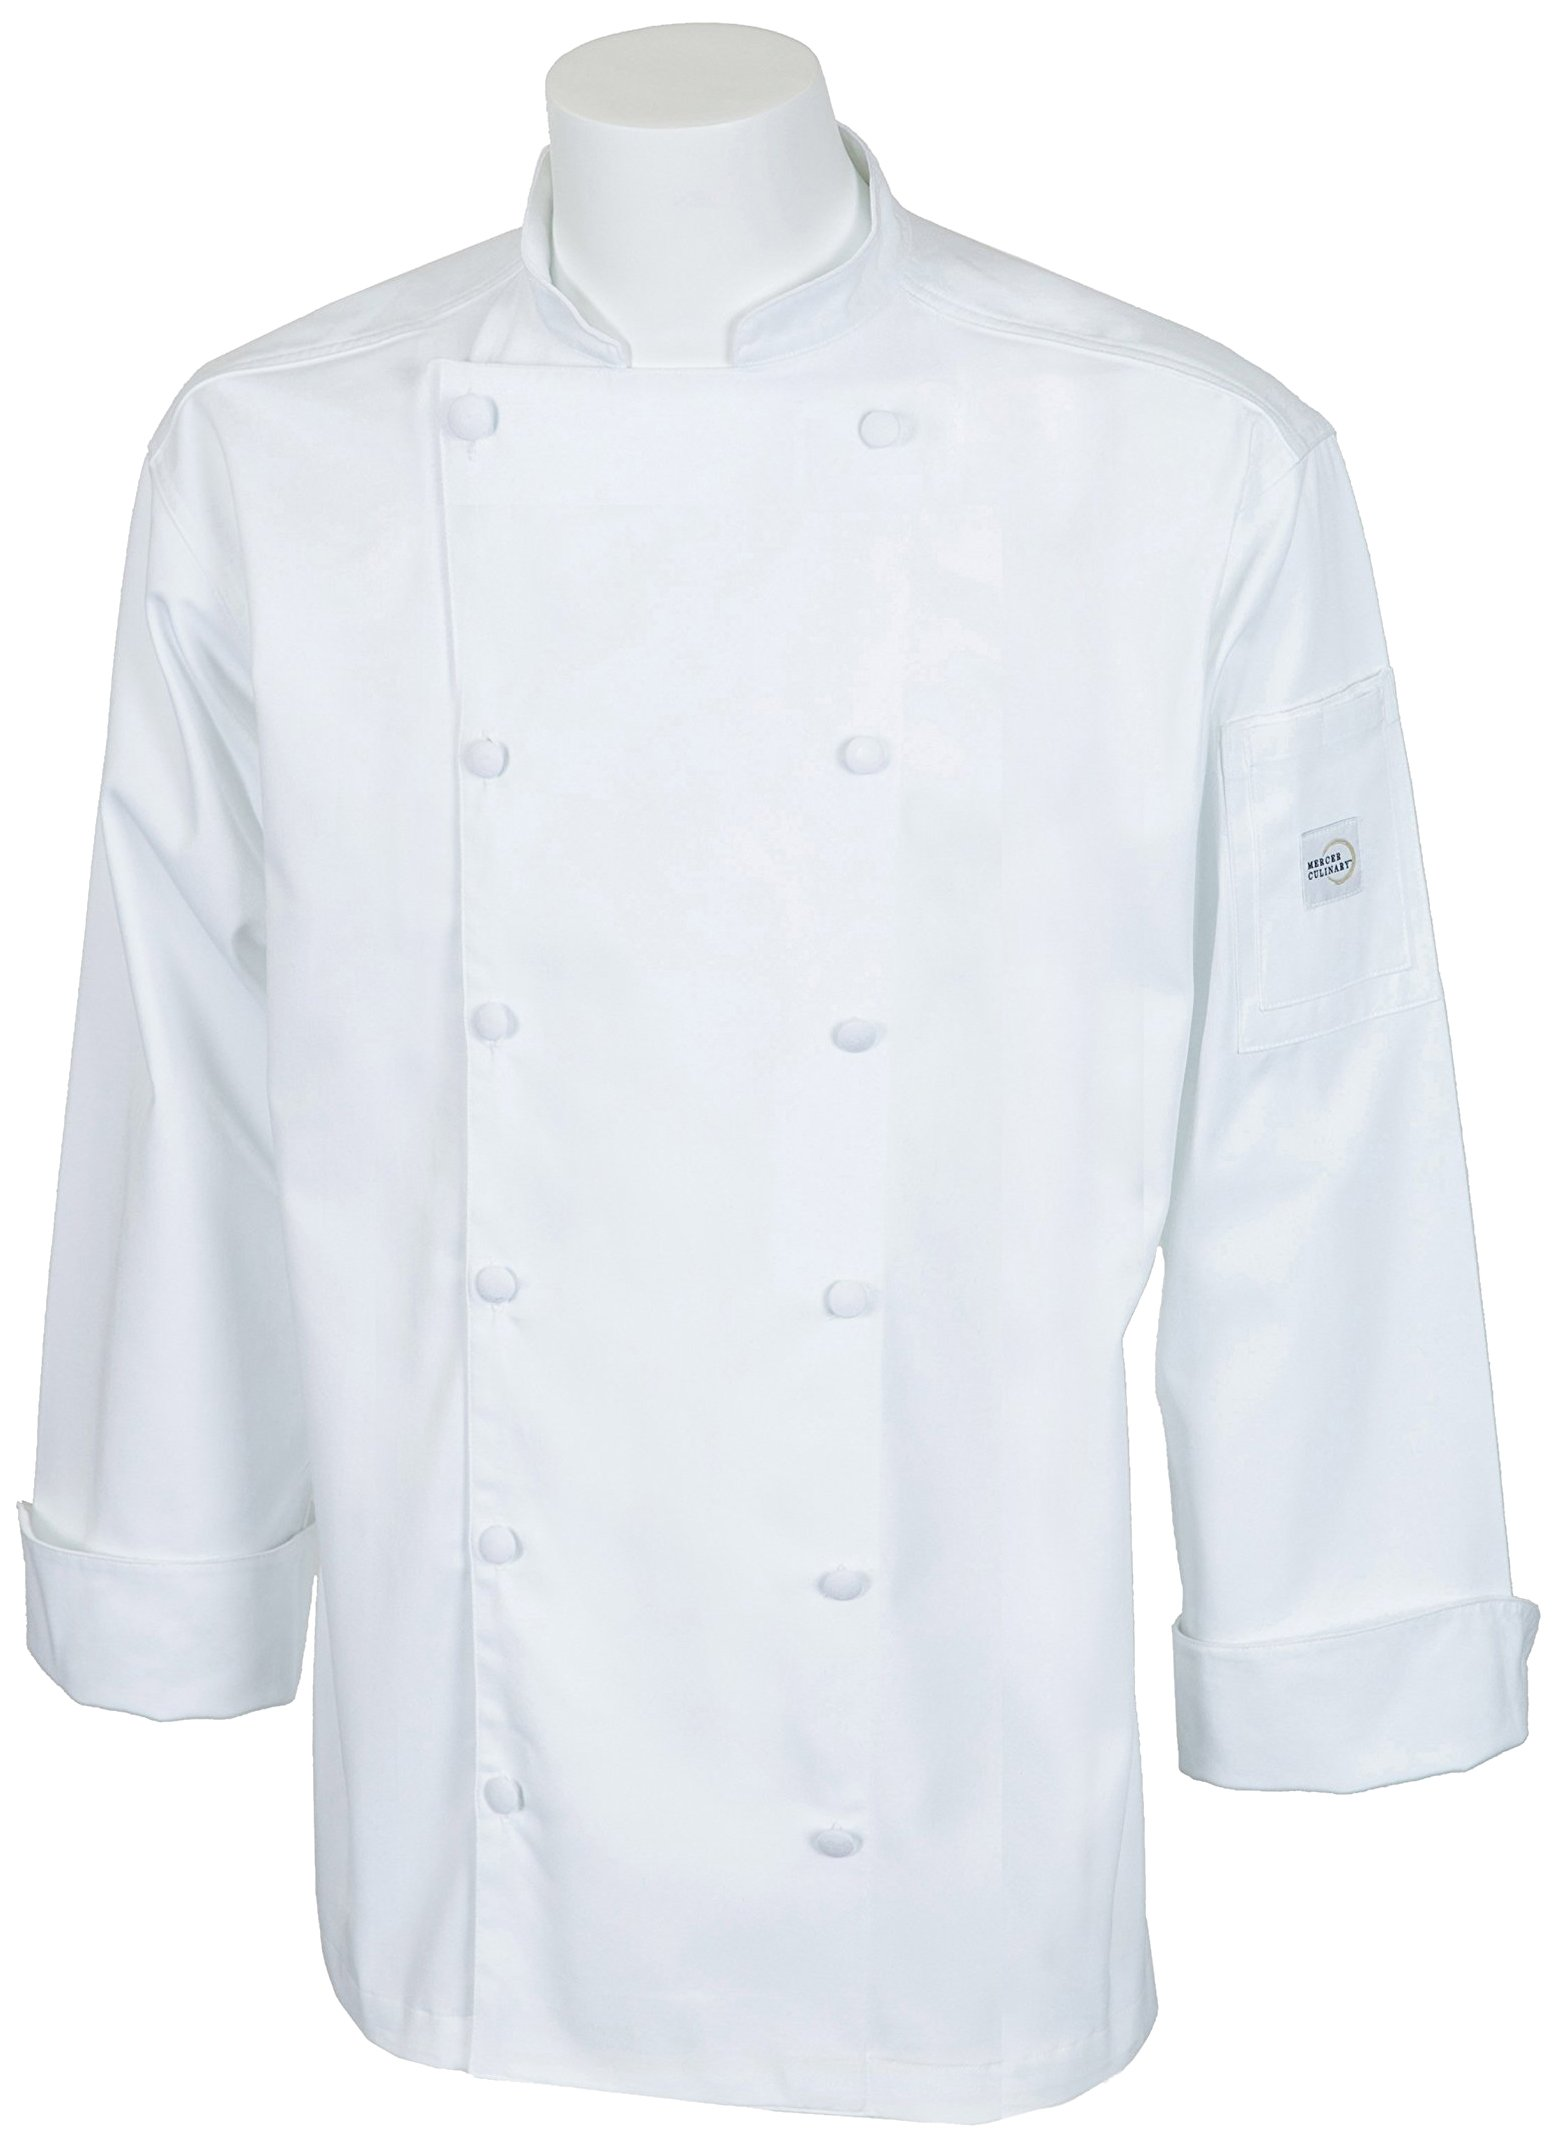 Mercer Culinary M62030WH1X Renaissance Men's Traditional Neck Chef Jacket, X-Large, White